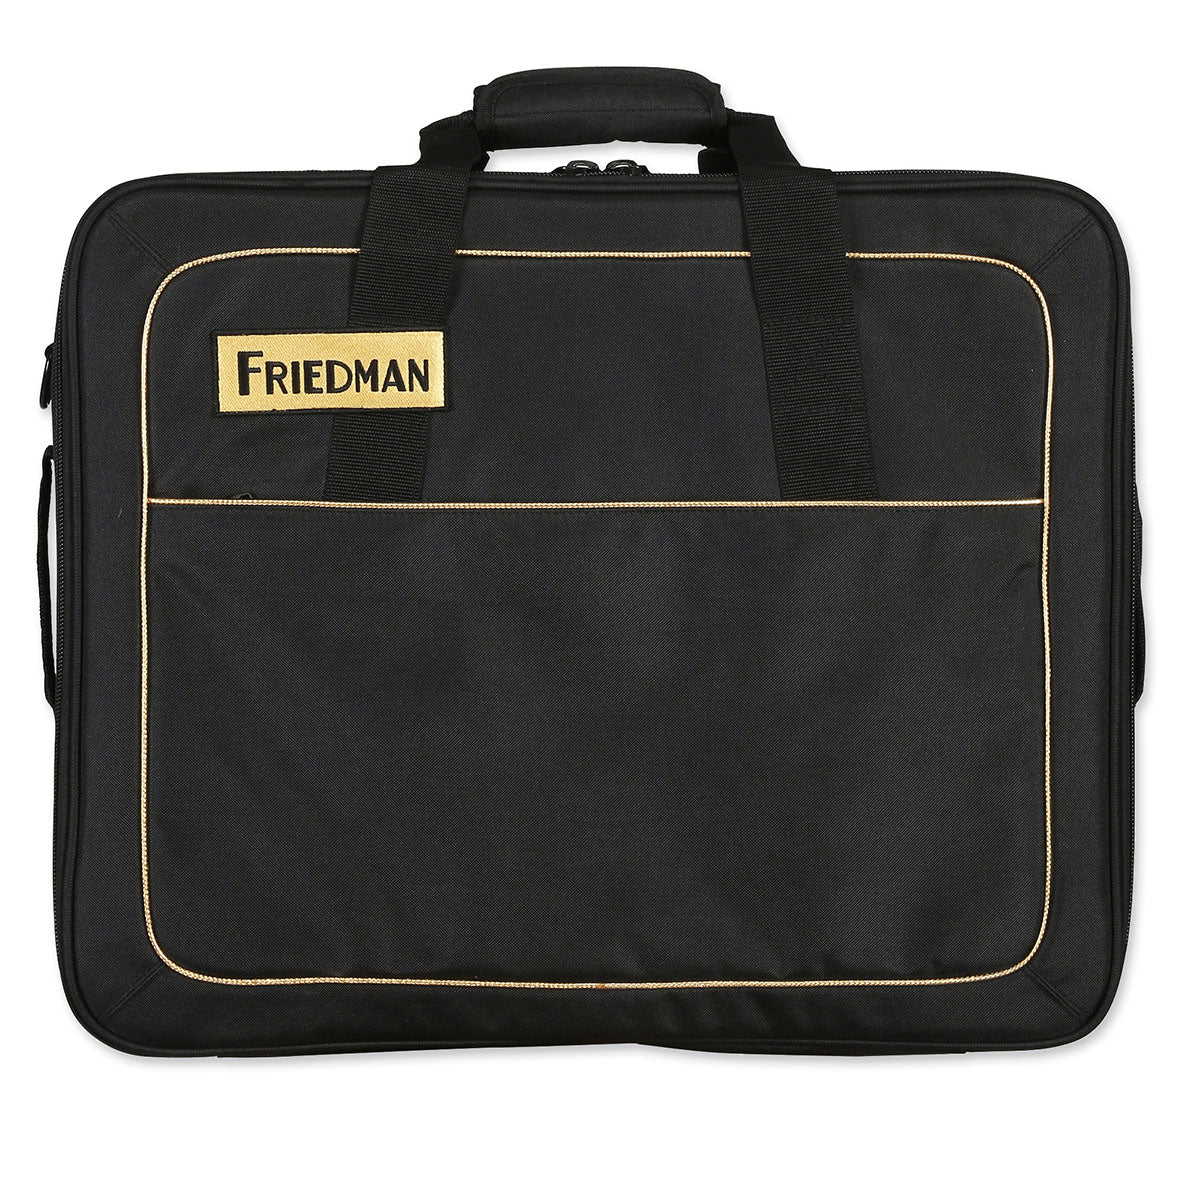 Friedman Tour Pro 1520 - Gold Package